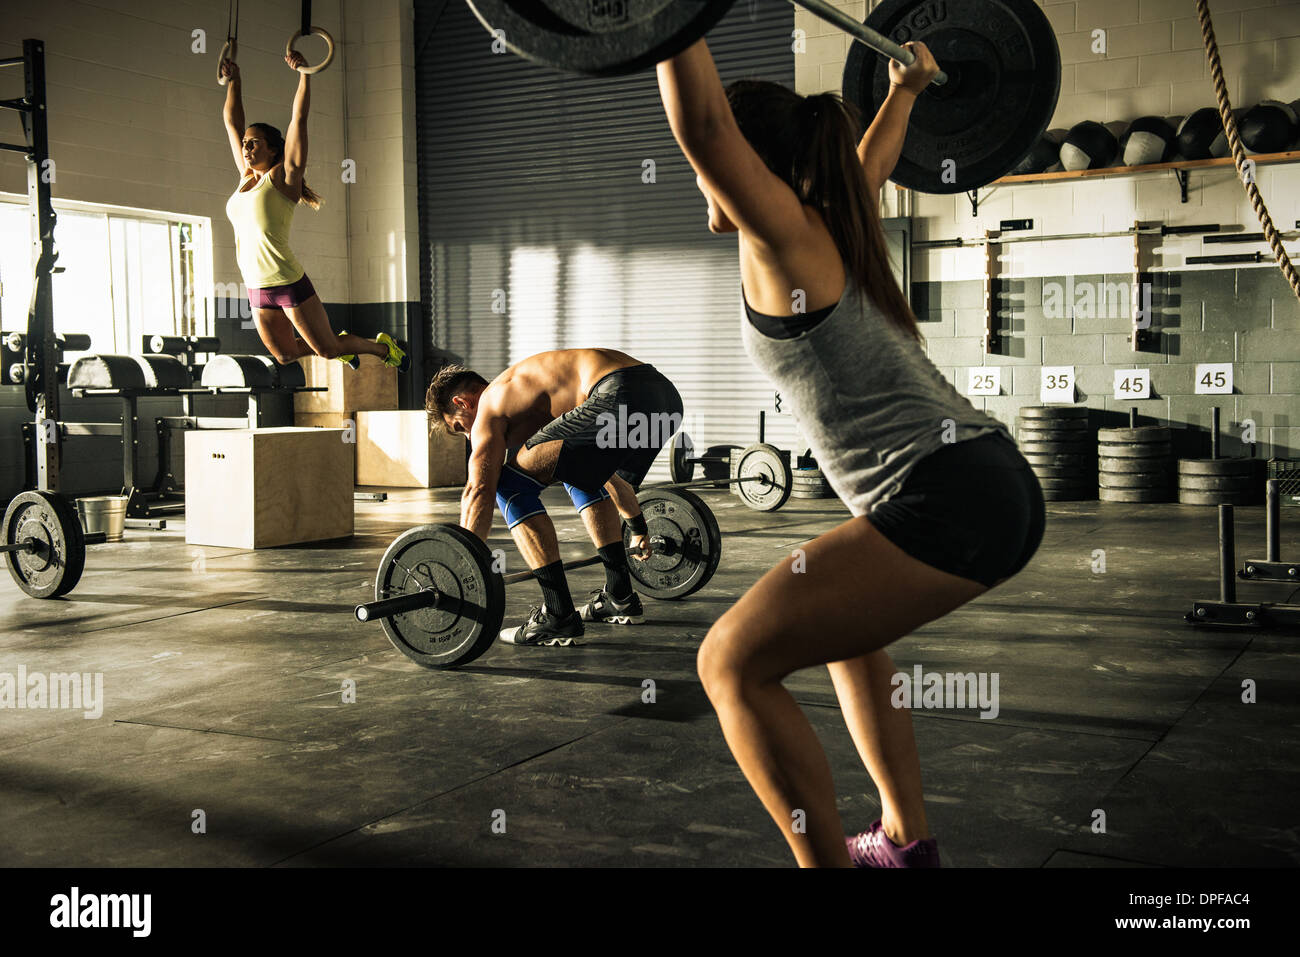 People training with barbells and gymnasium rings Stock Photo